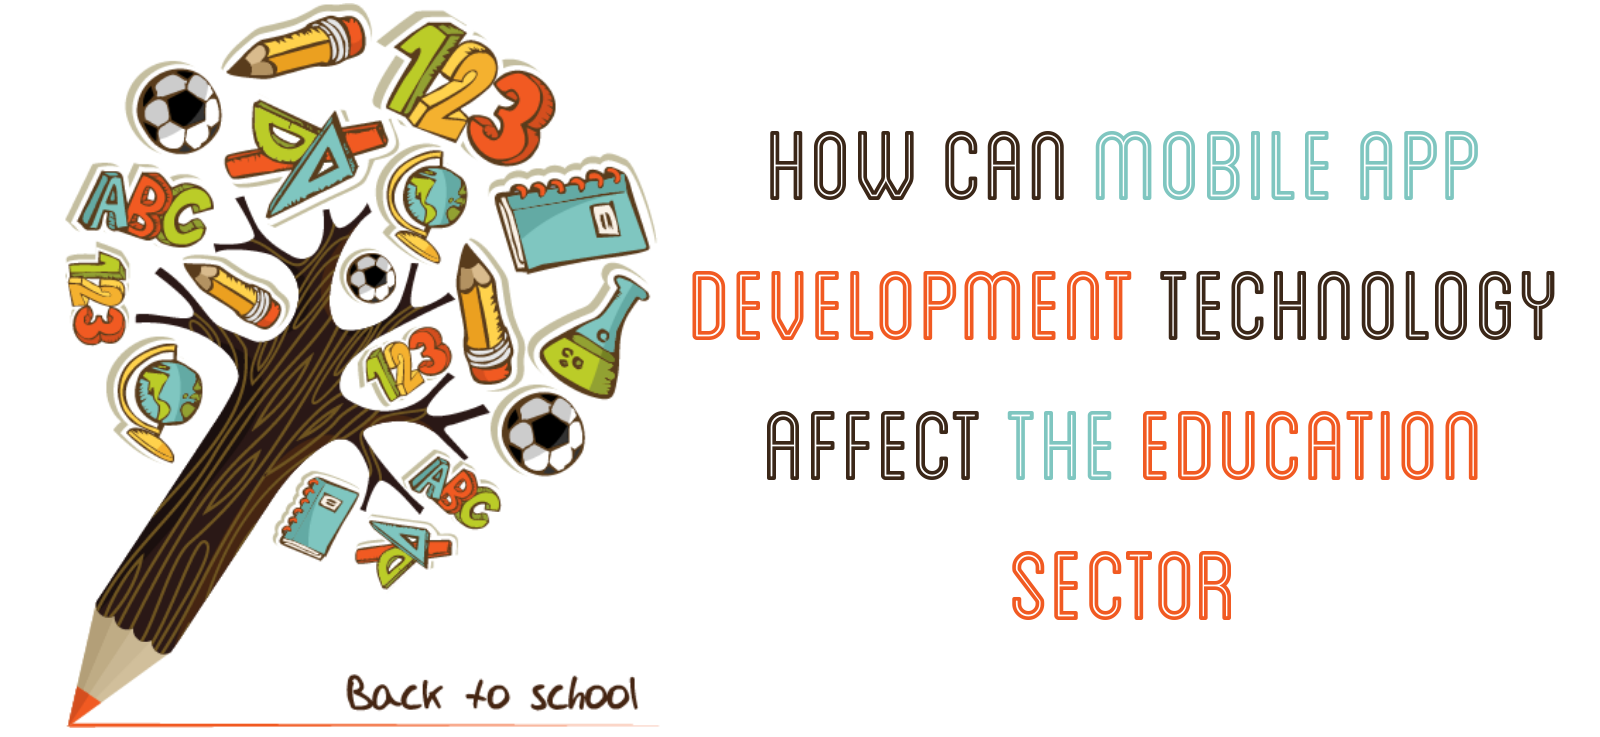 How can Mobile App Development Technology affect the Education Sector - Image 1